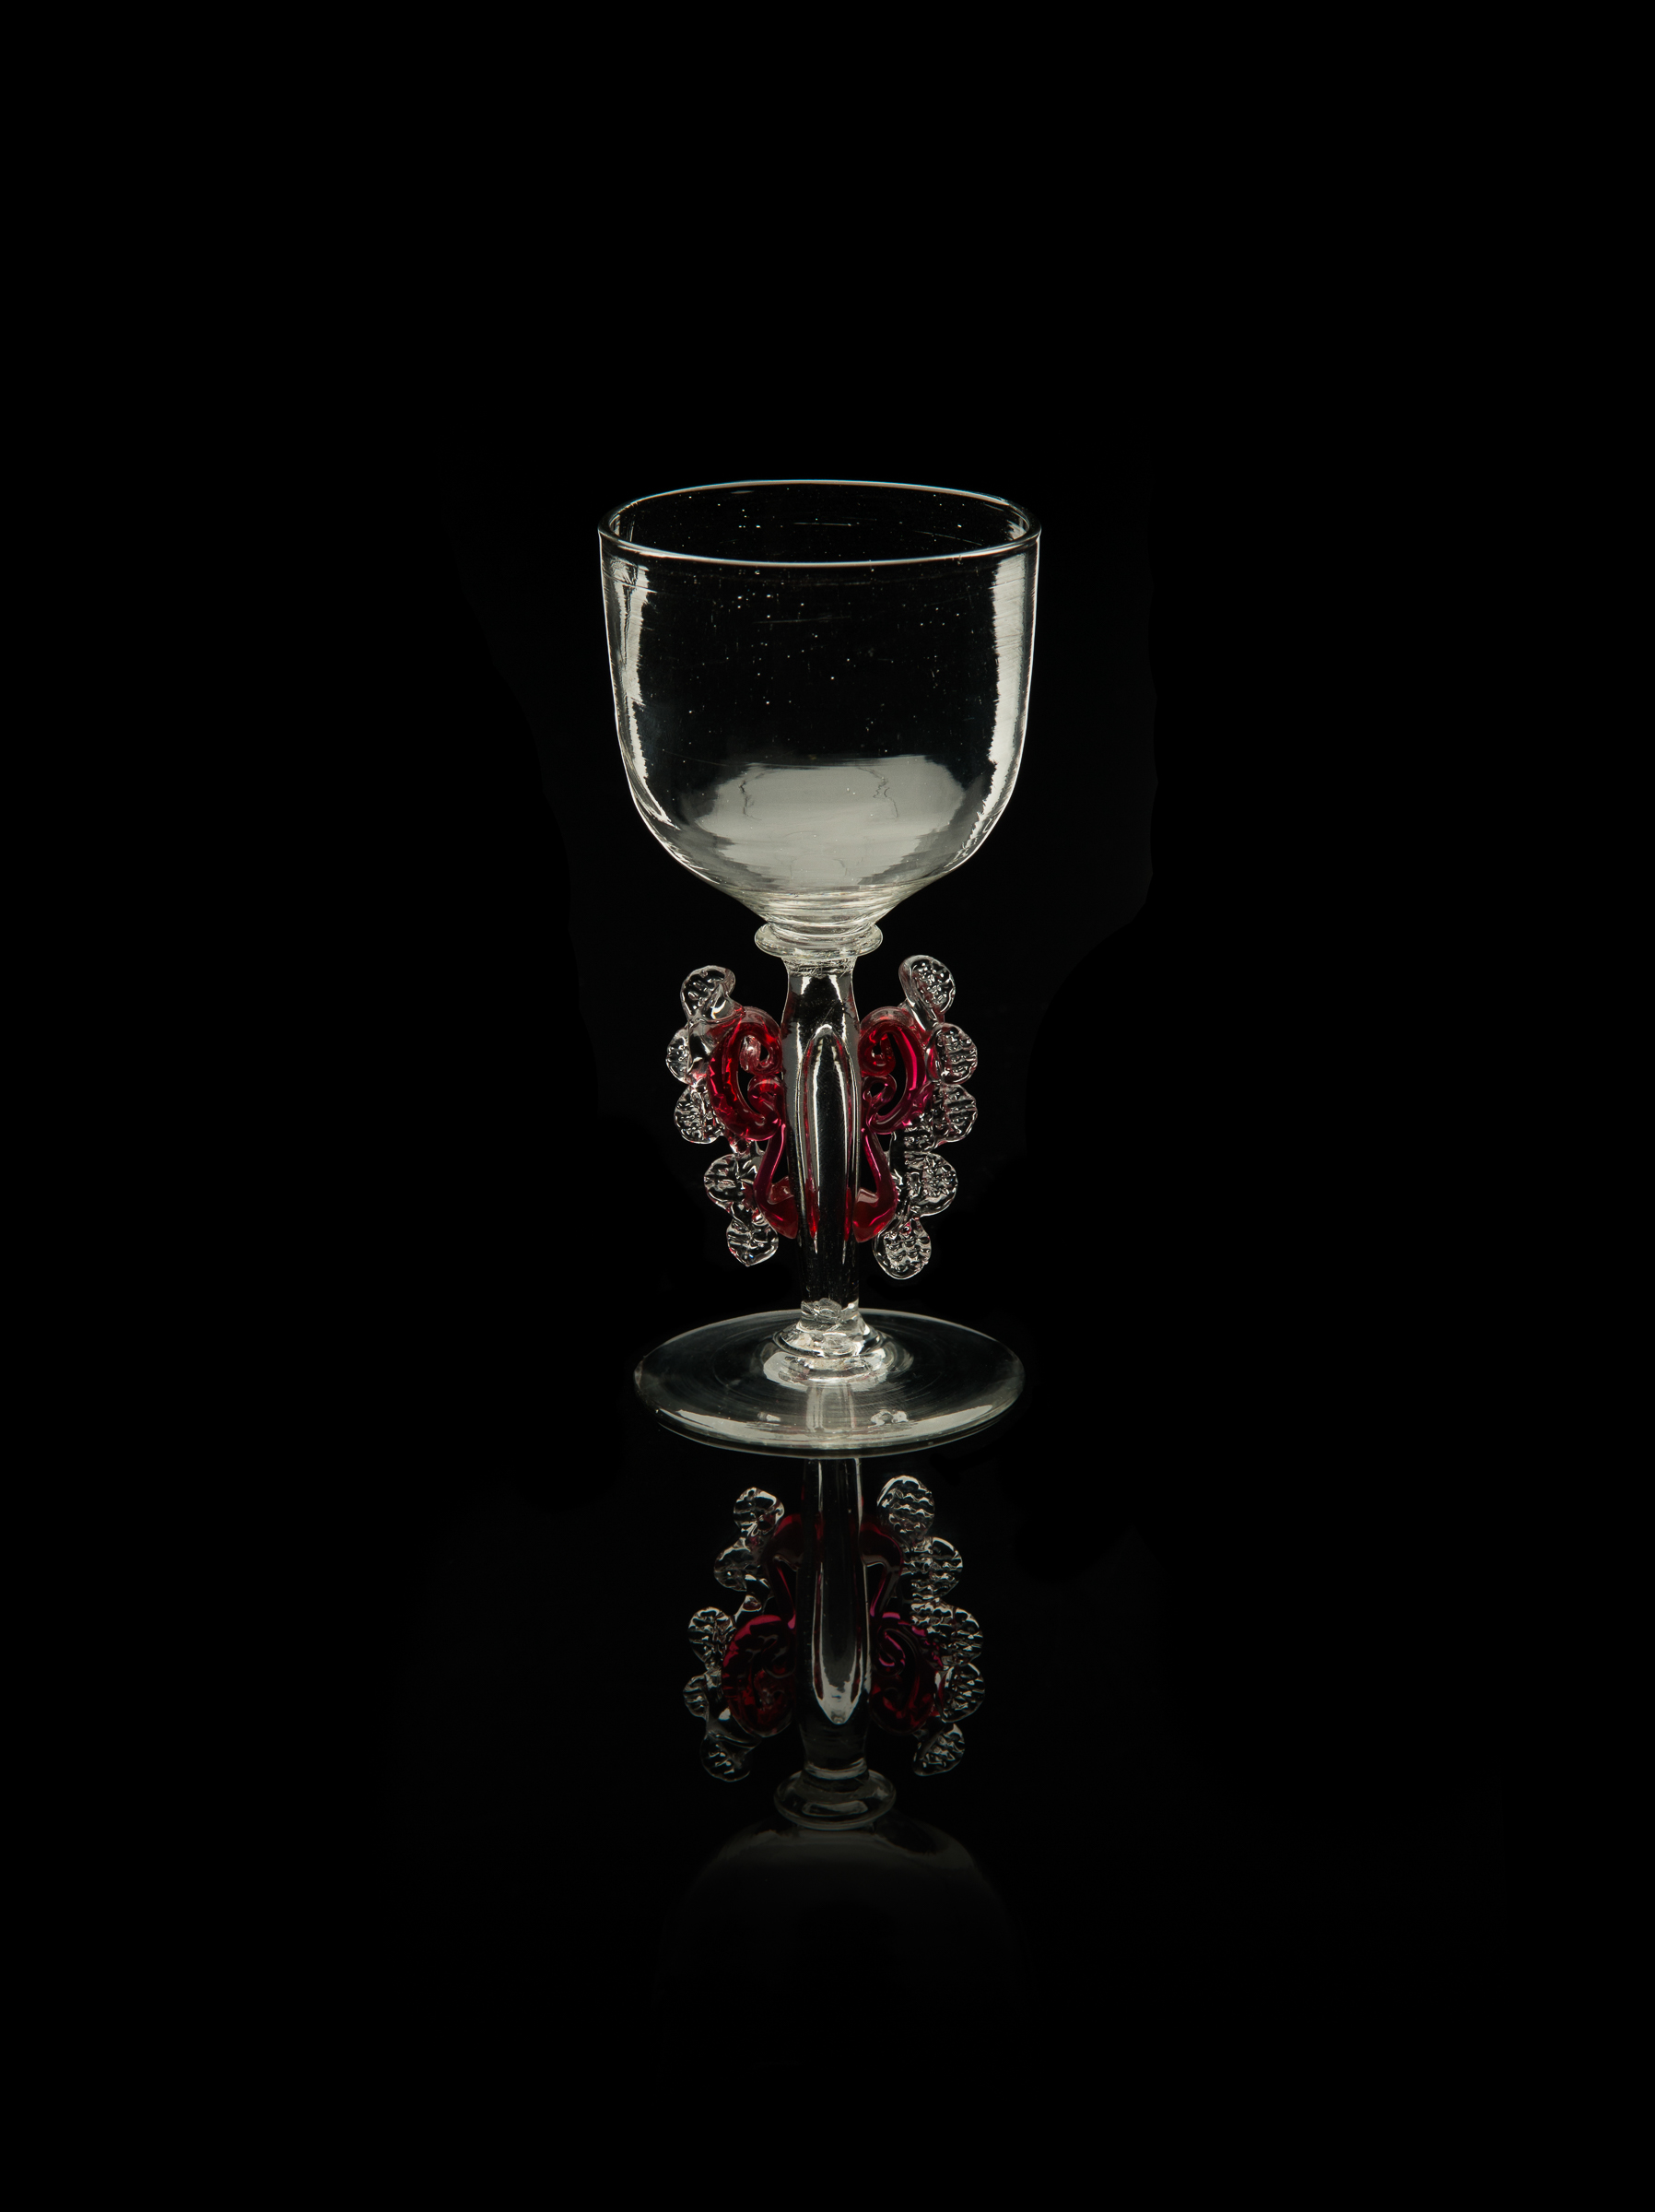 Unknown,  Sherry Glass with Ruby and Crystal Morise on Stem  (glass, 4 5/16 inches), VV.612